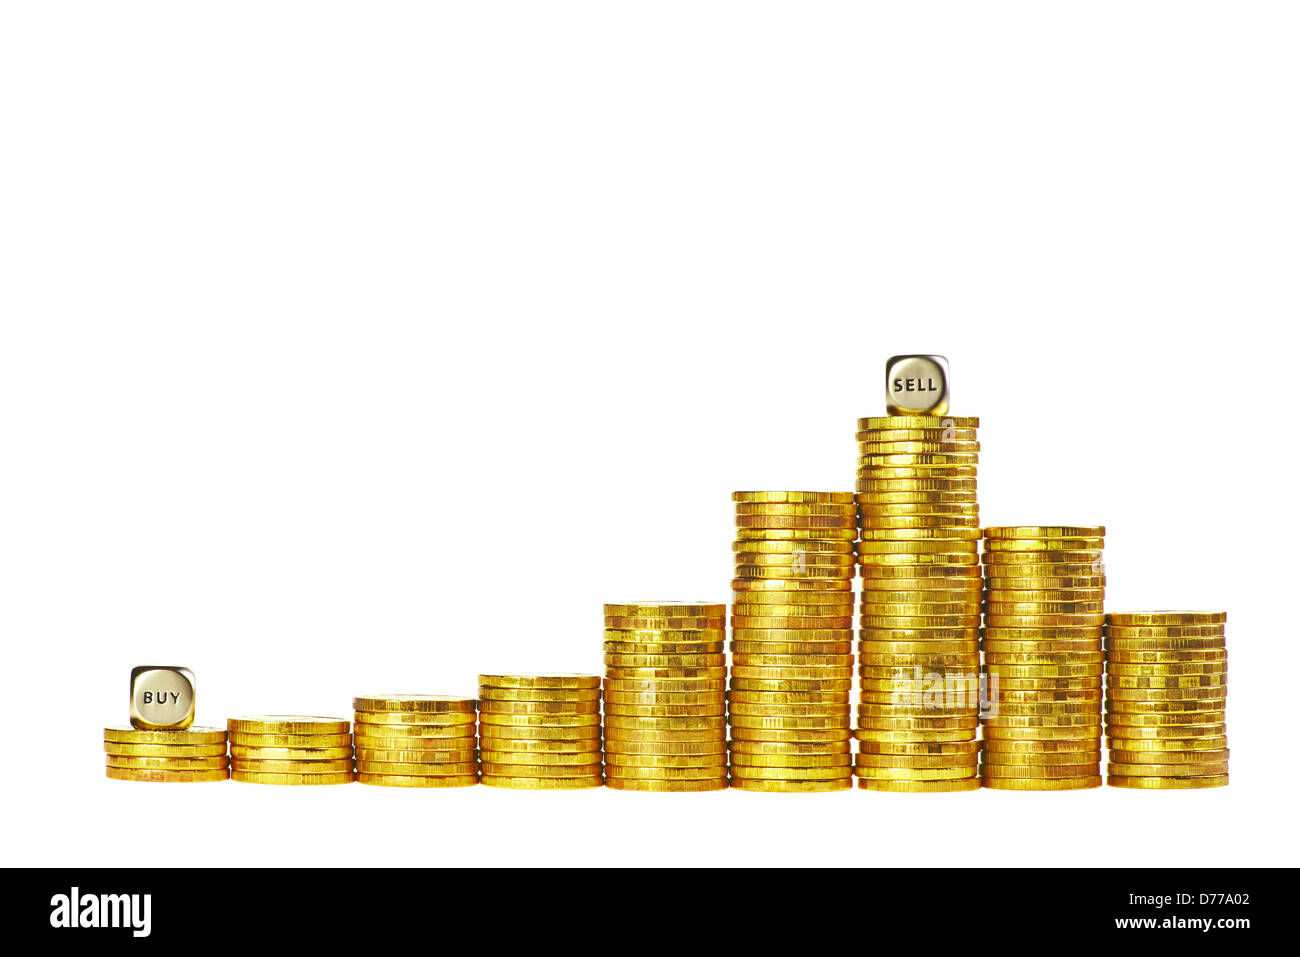 Columns of golden coins rising and down with the dices Buy and Sell isolated on white - Stock Image